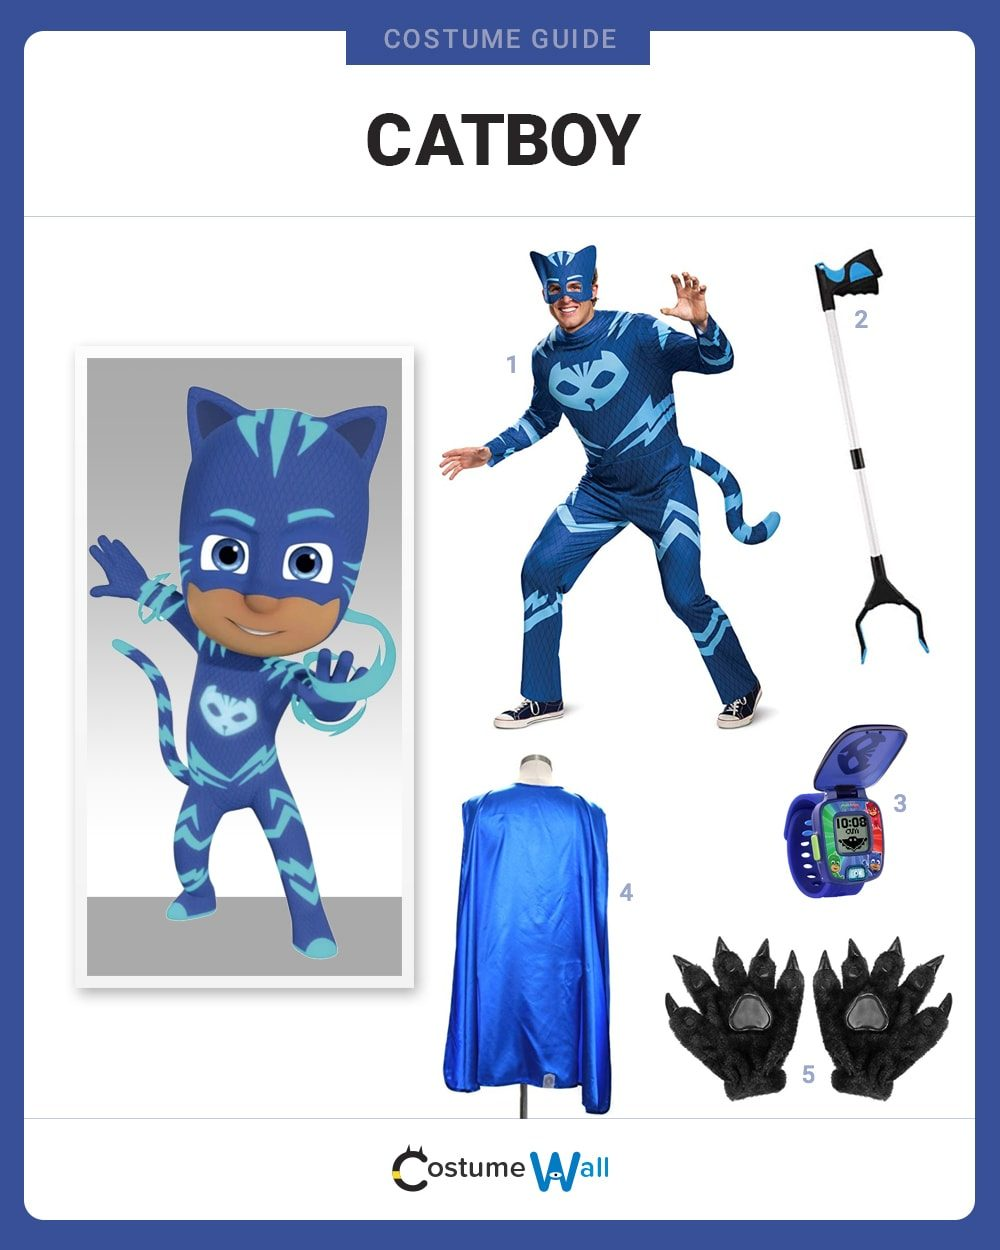 Catboy Costume Guide